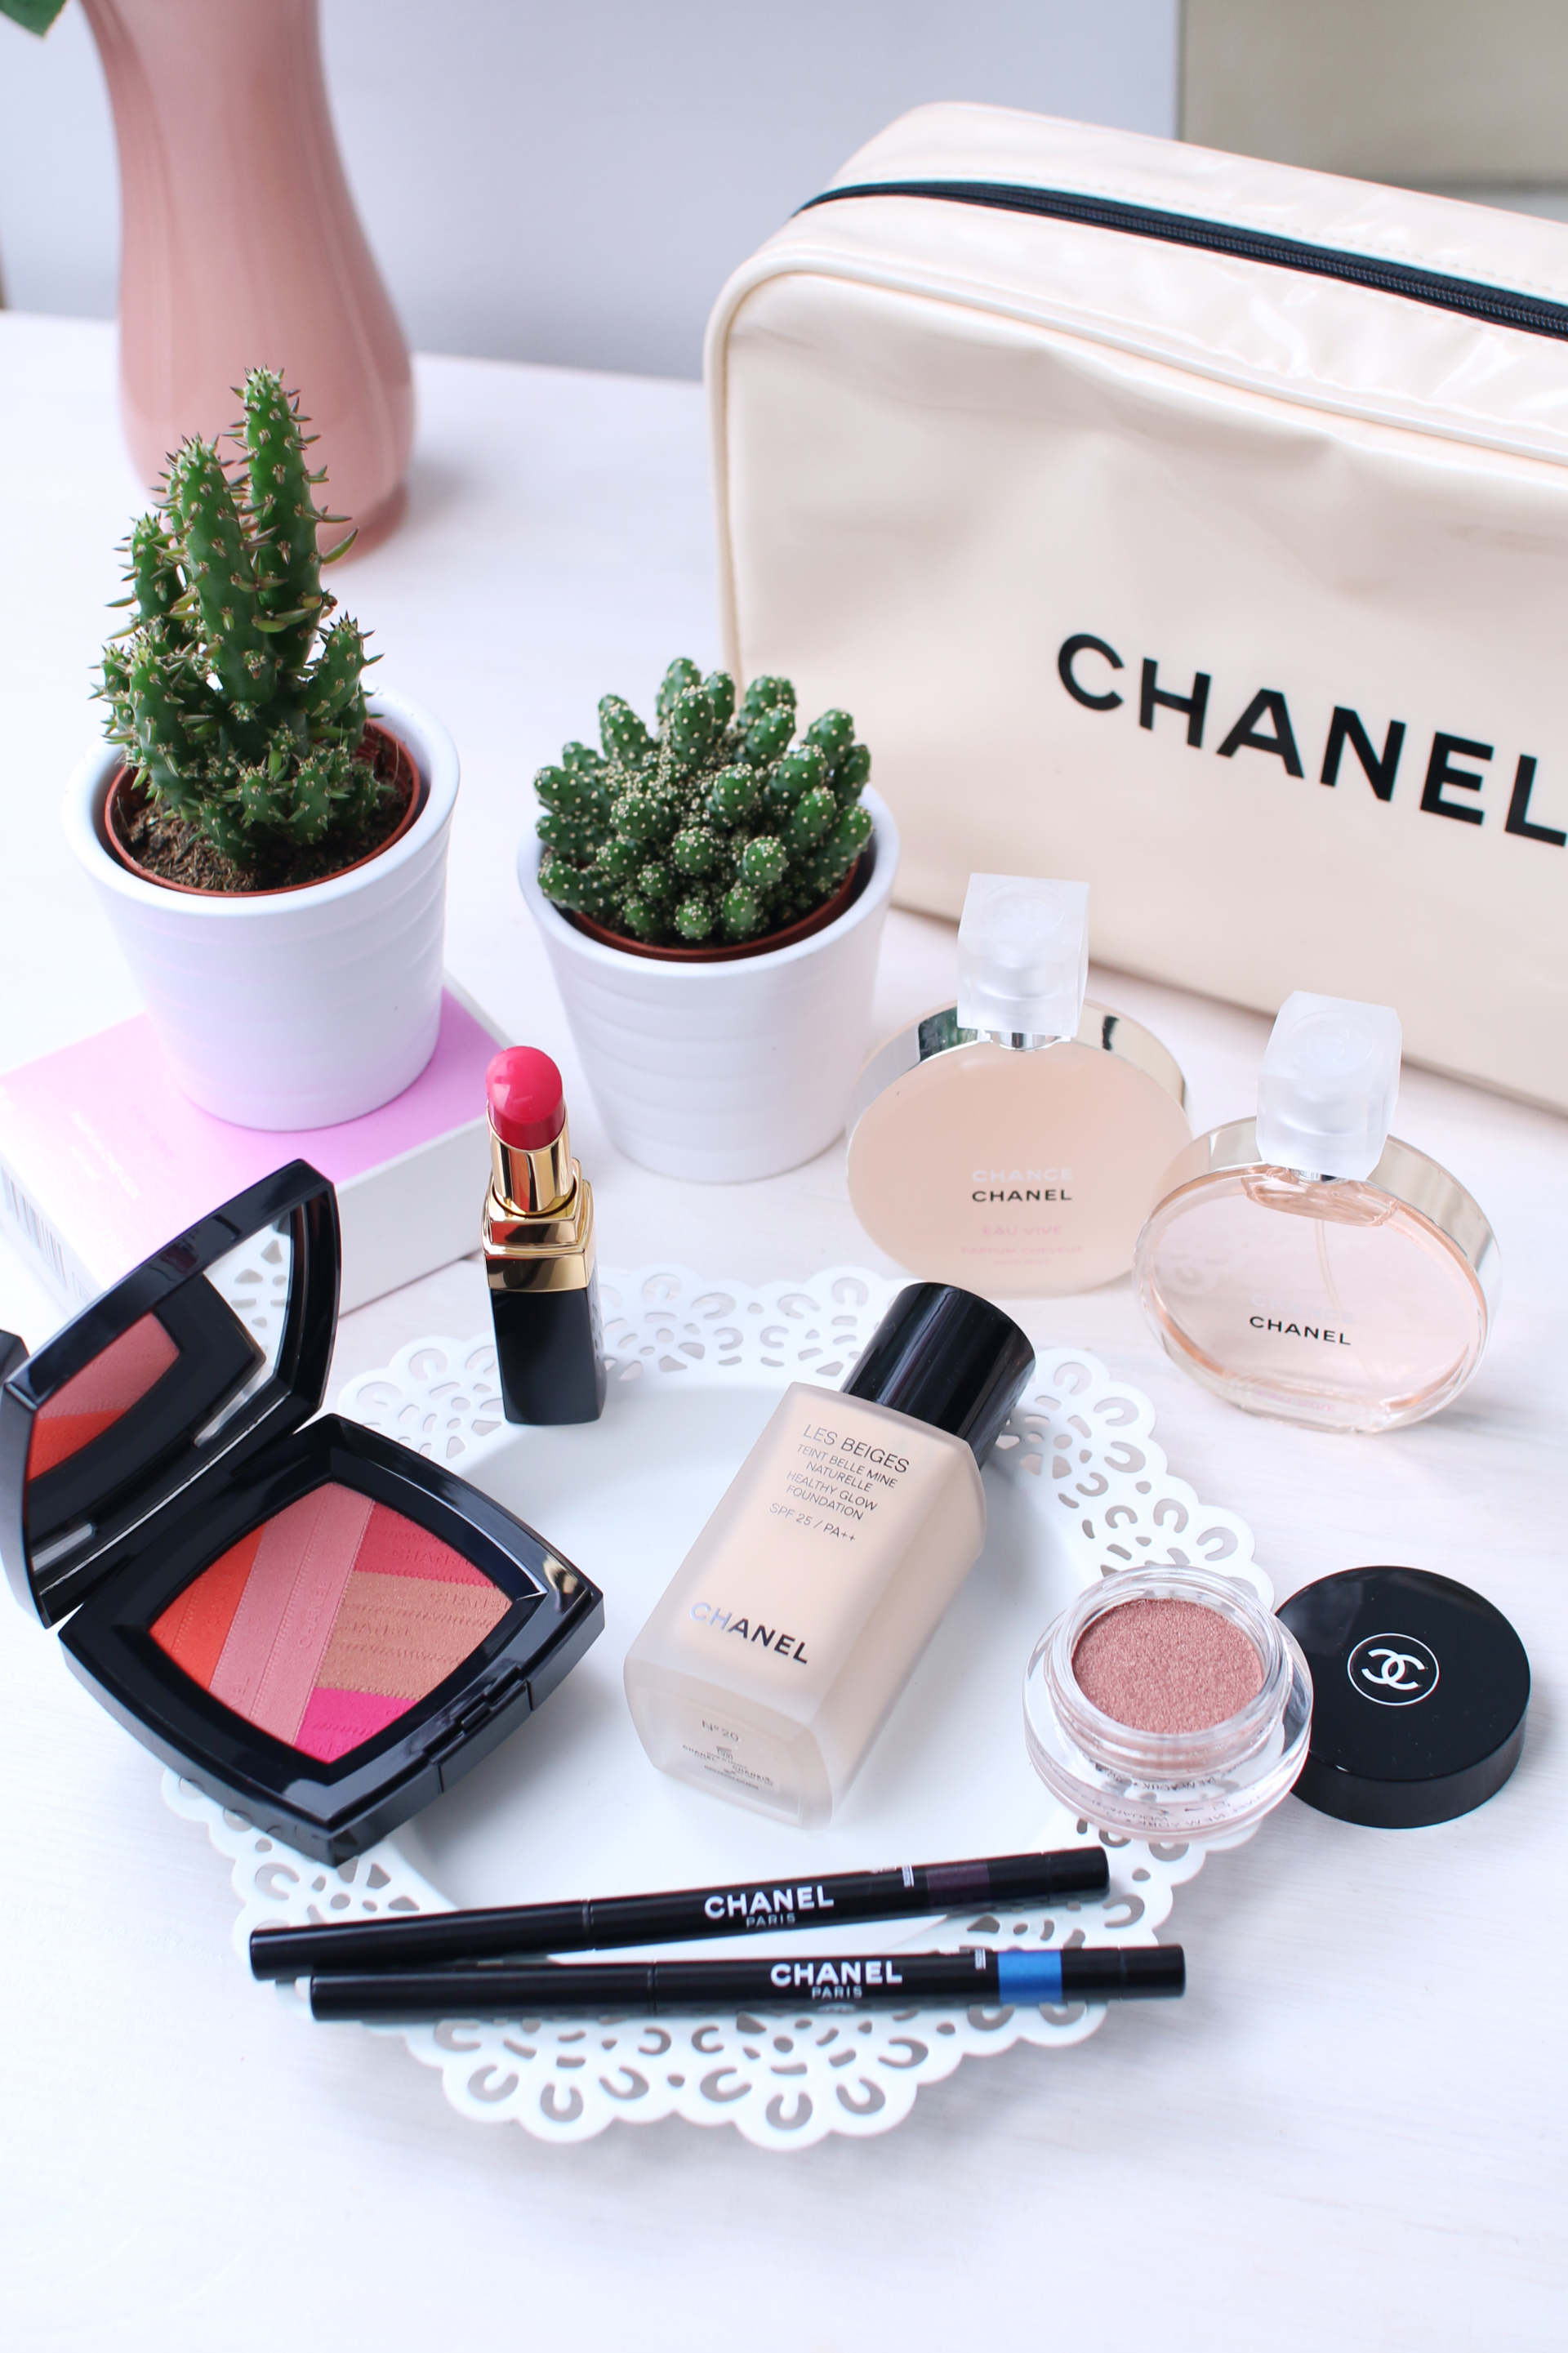 Chanel Les Beiges and spring collection